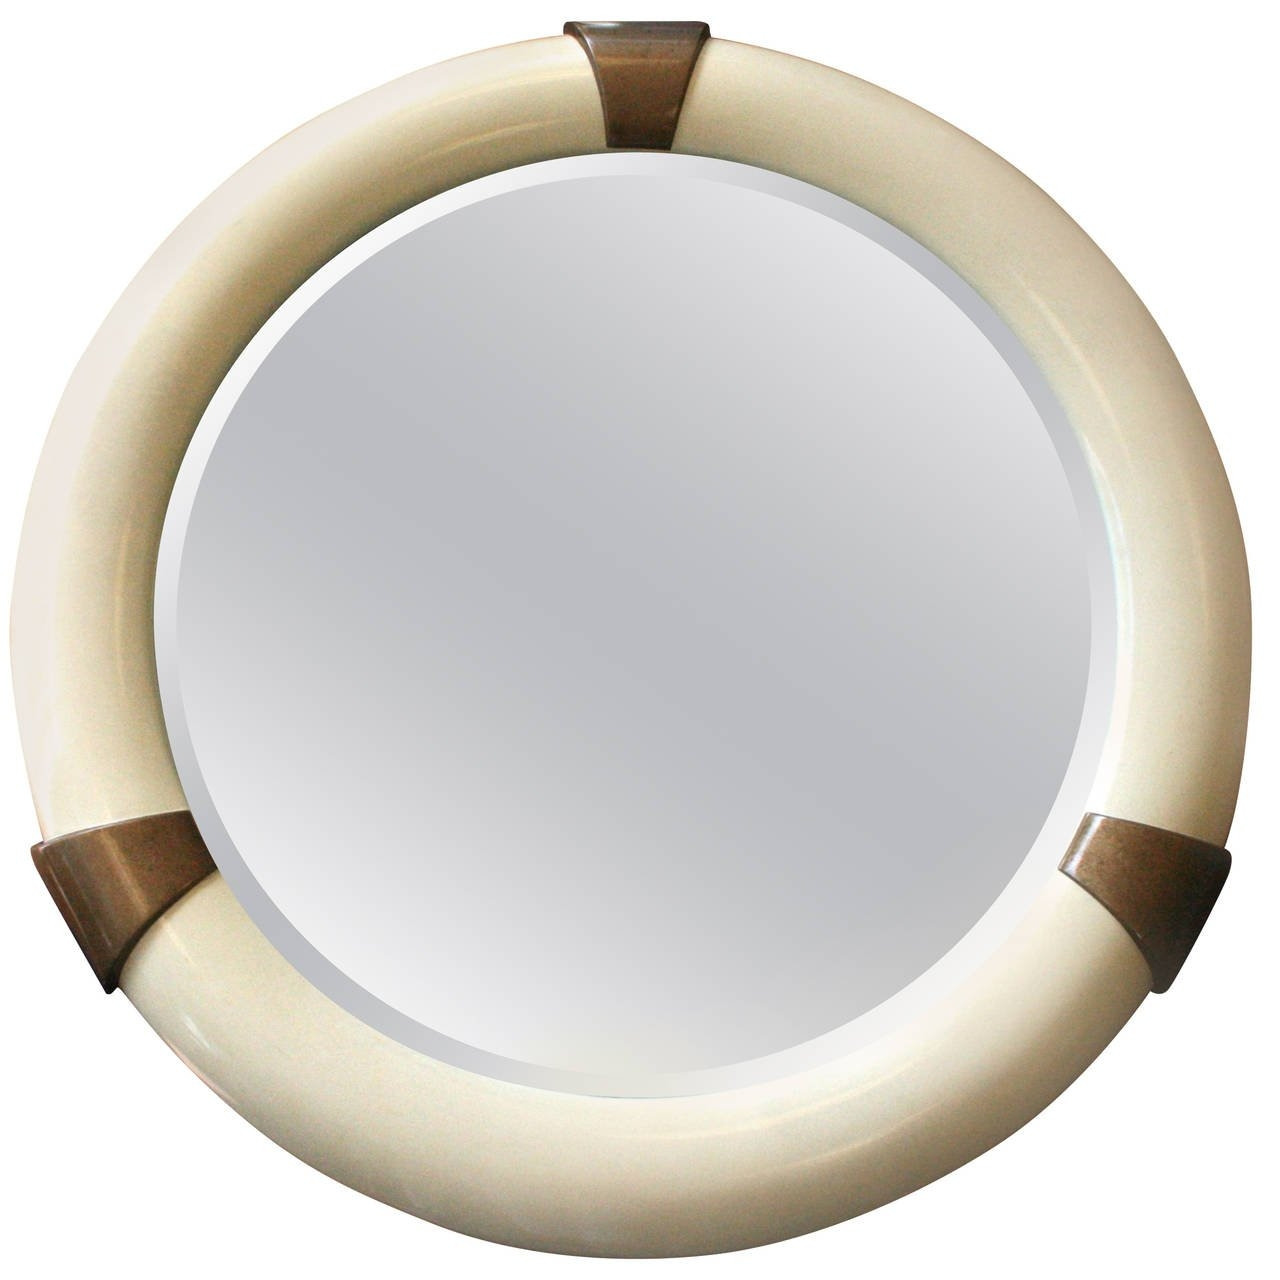 Karl Springer Style Large Lacquered Round Mirror At 1stdibs Throughout Large Round Mirrors (Image 10 of 15)